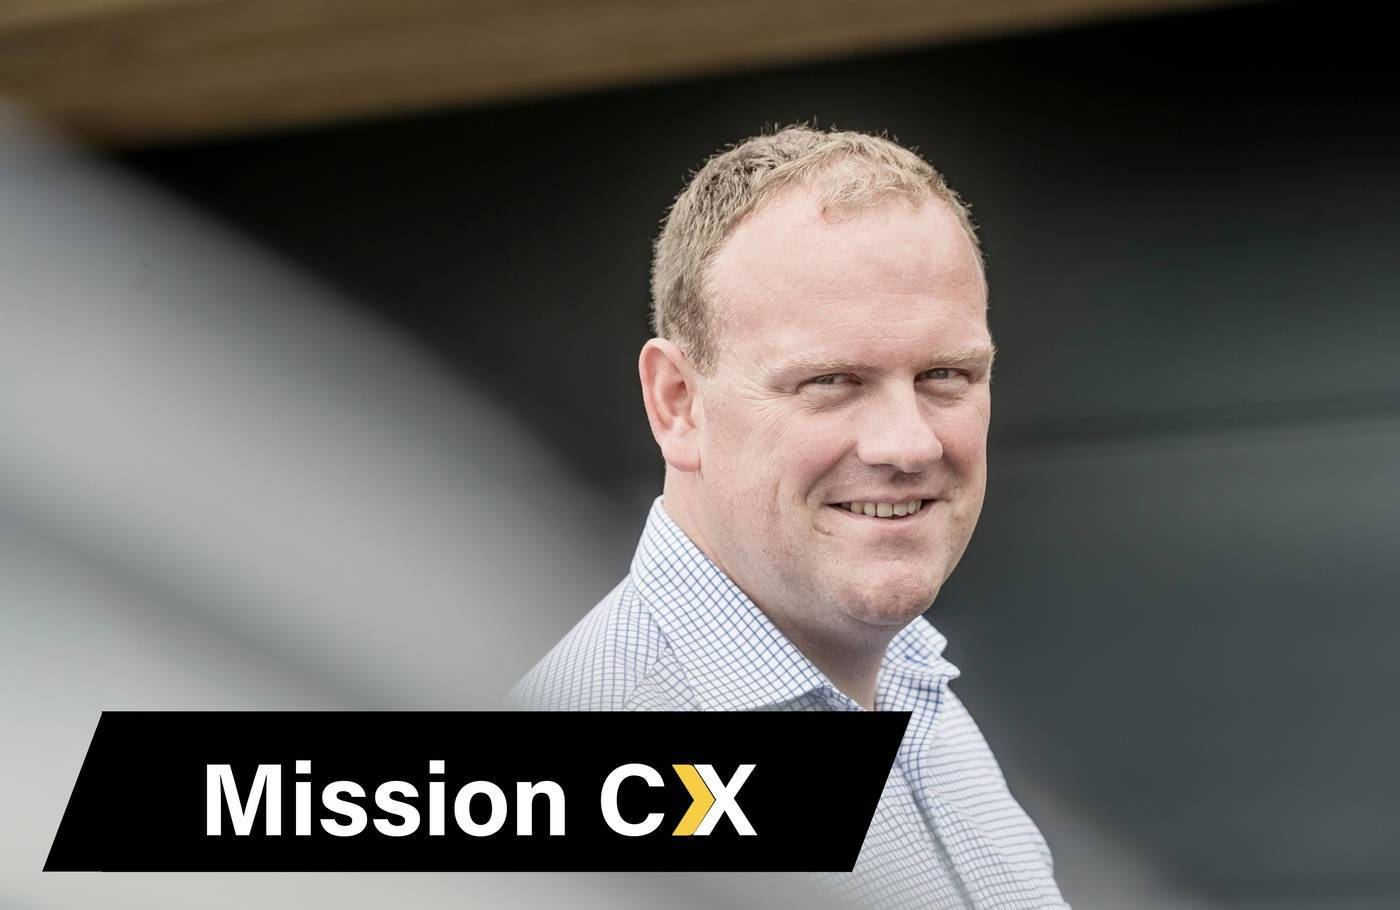 Ready to kickstart your mission CX?